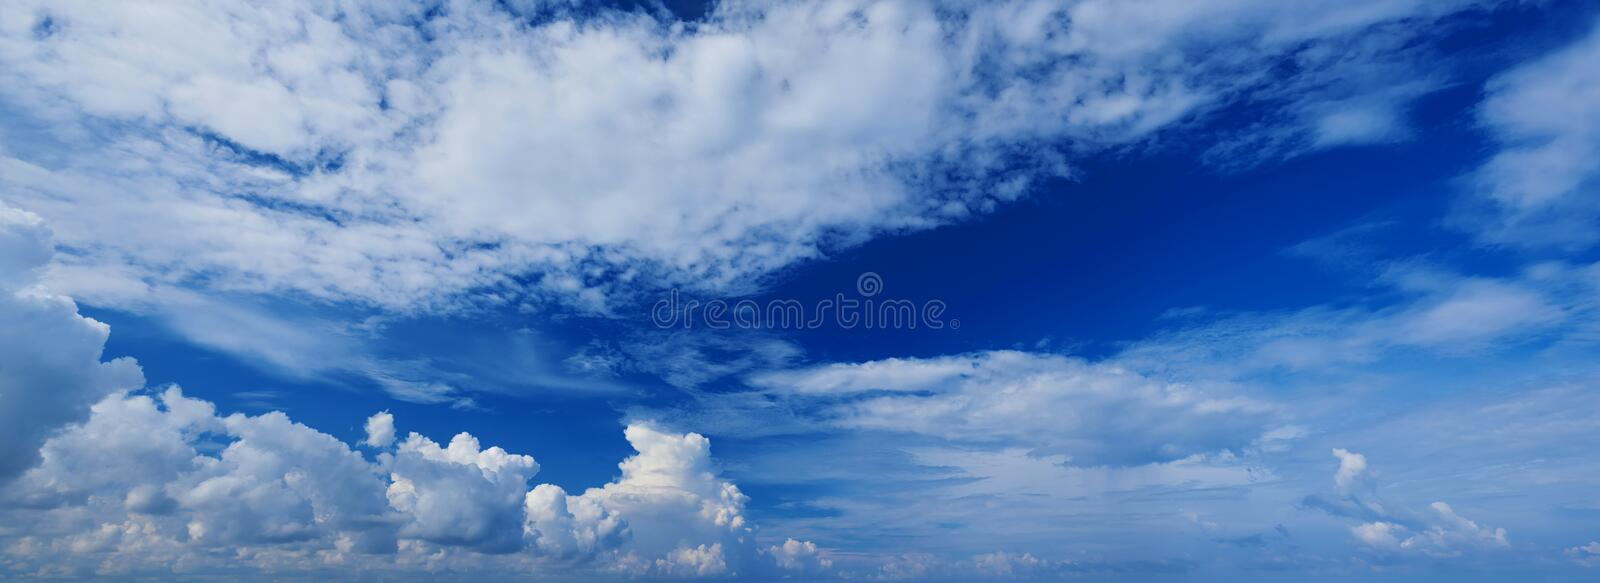 Wide panoramic view of romantic navy blue sky with white grey clouds. High resolution artistic skyline background image. Sky panor royalty free stock images